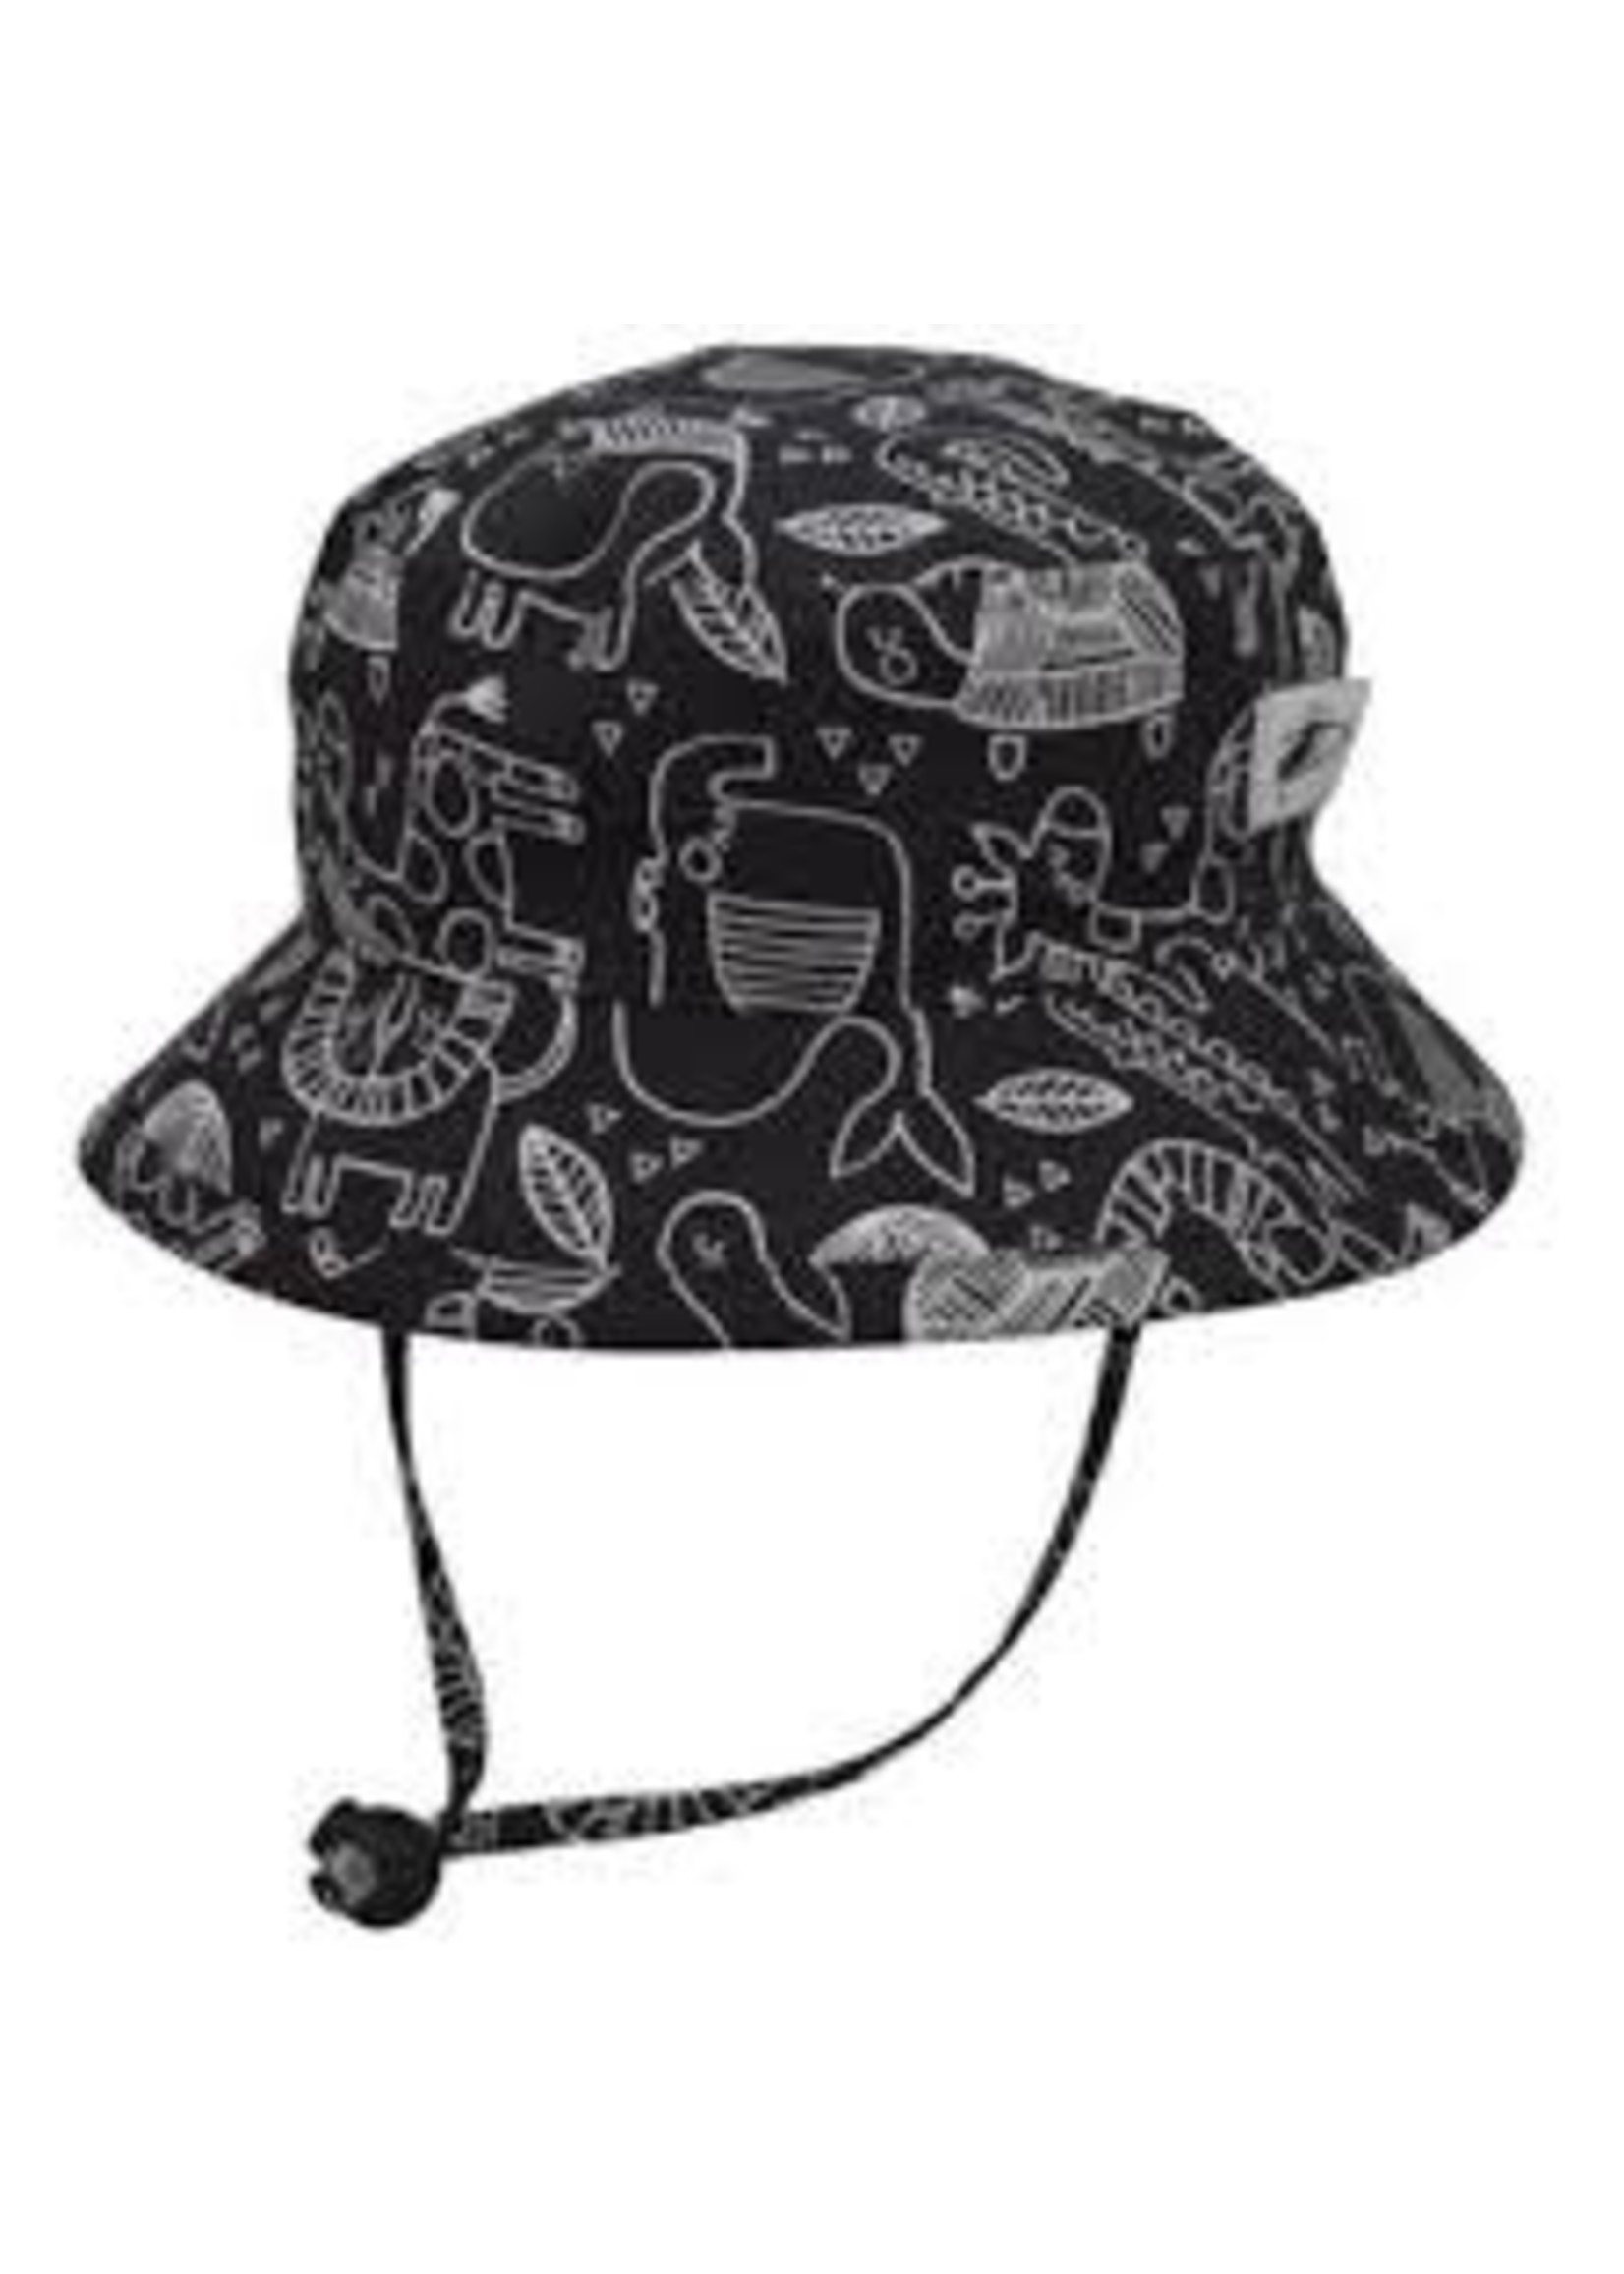 Puffin PG hat